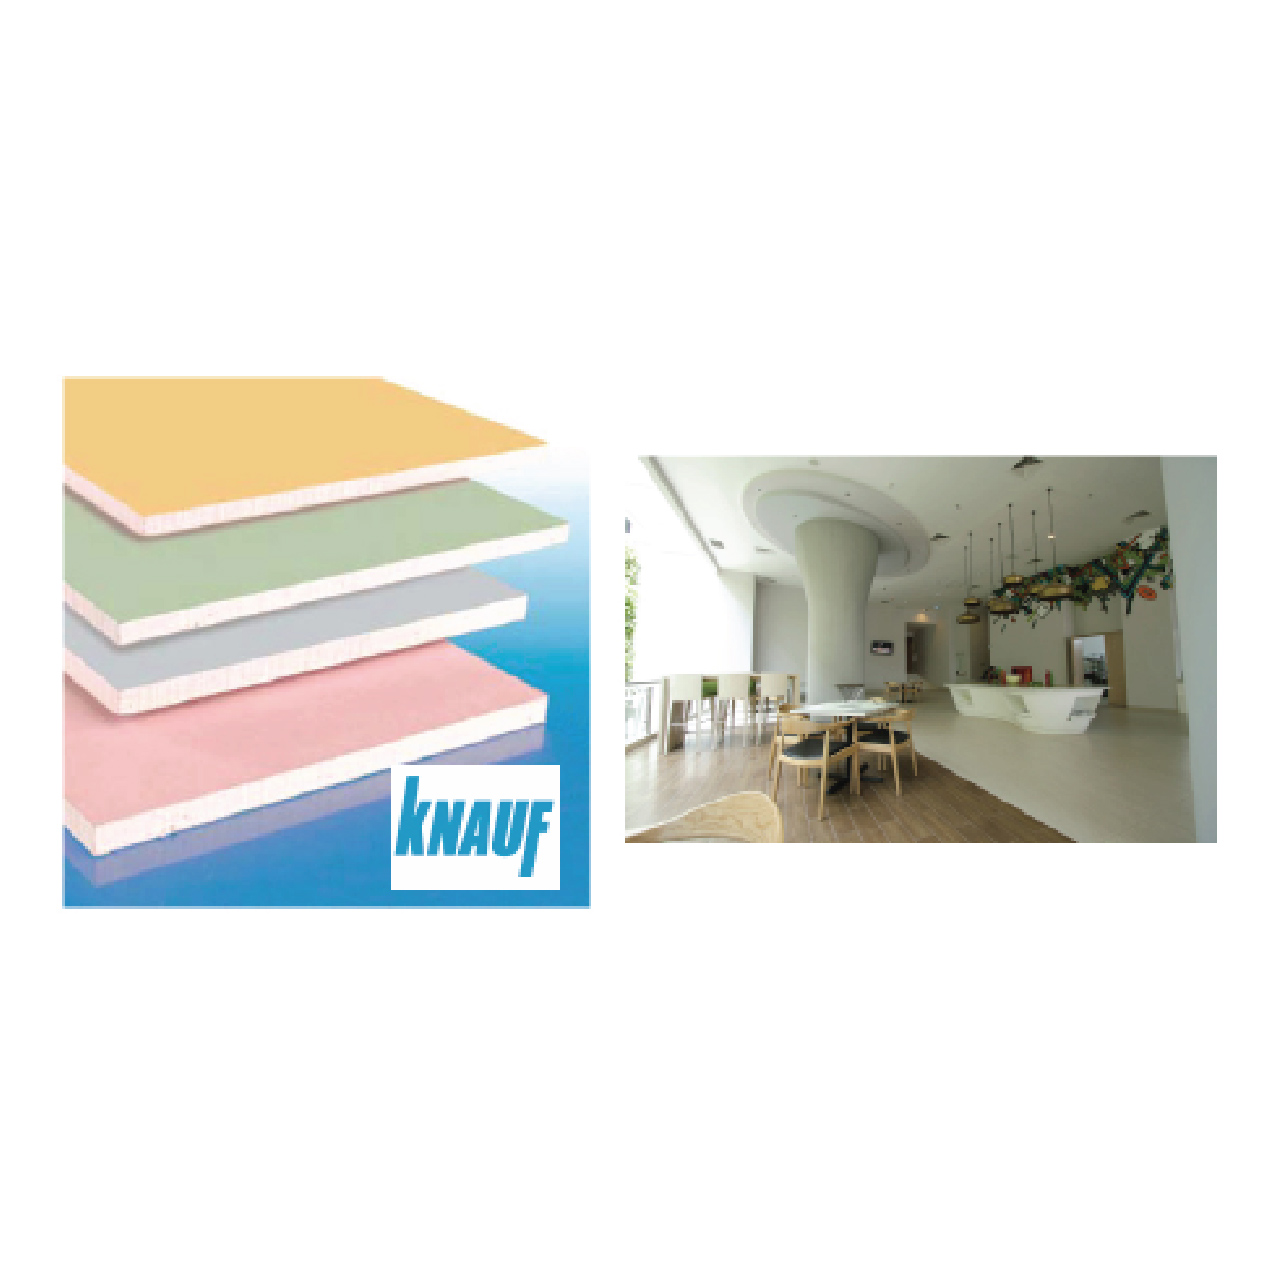 files/product/knauf-gypsumboard-764267ace7872c3.jpg